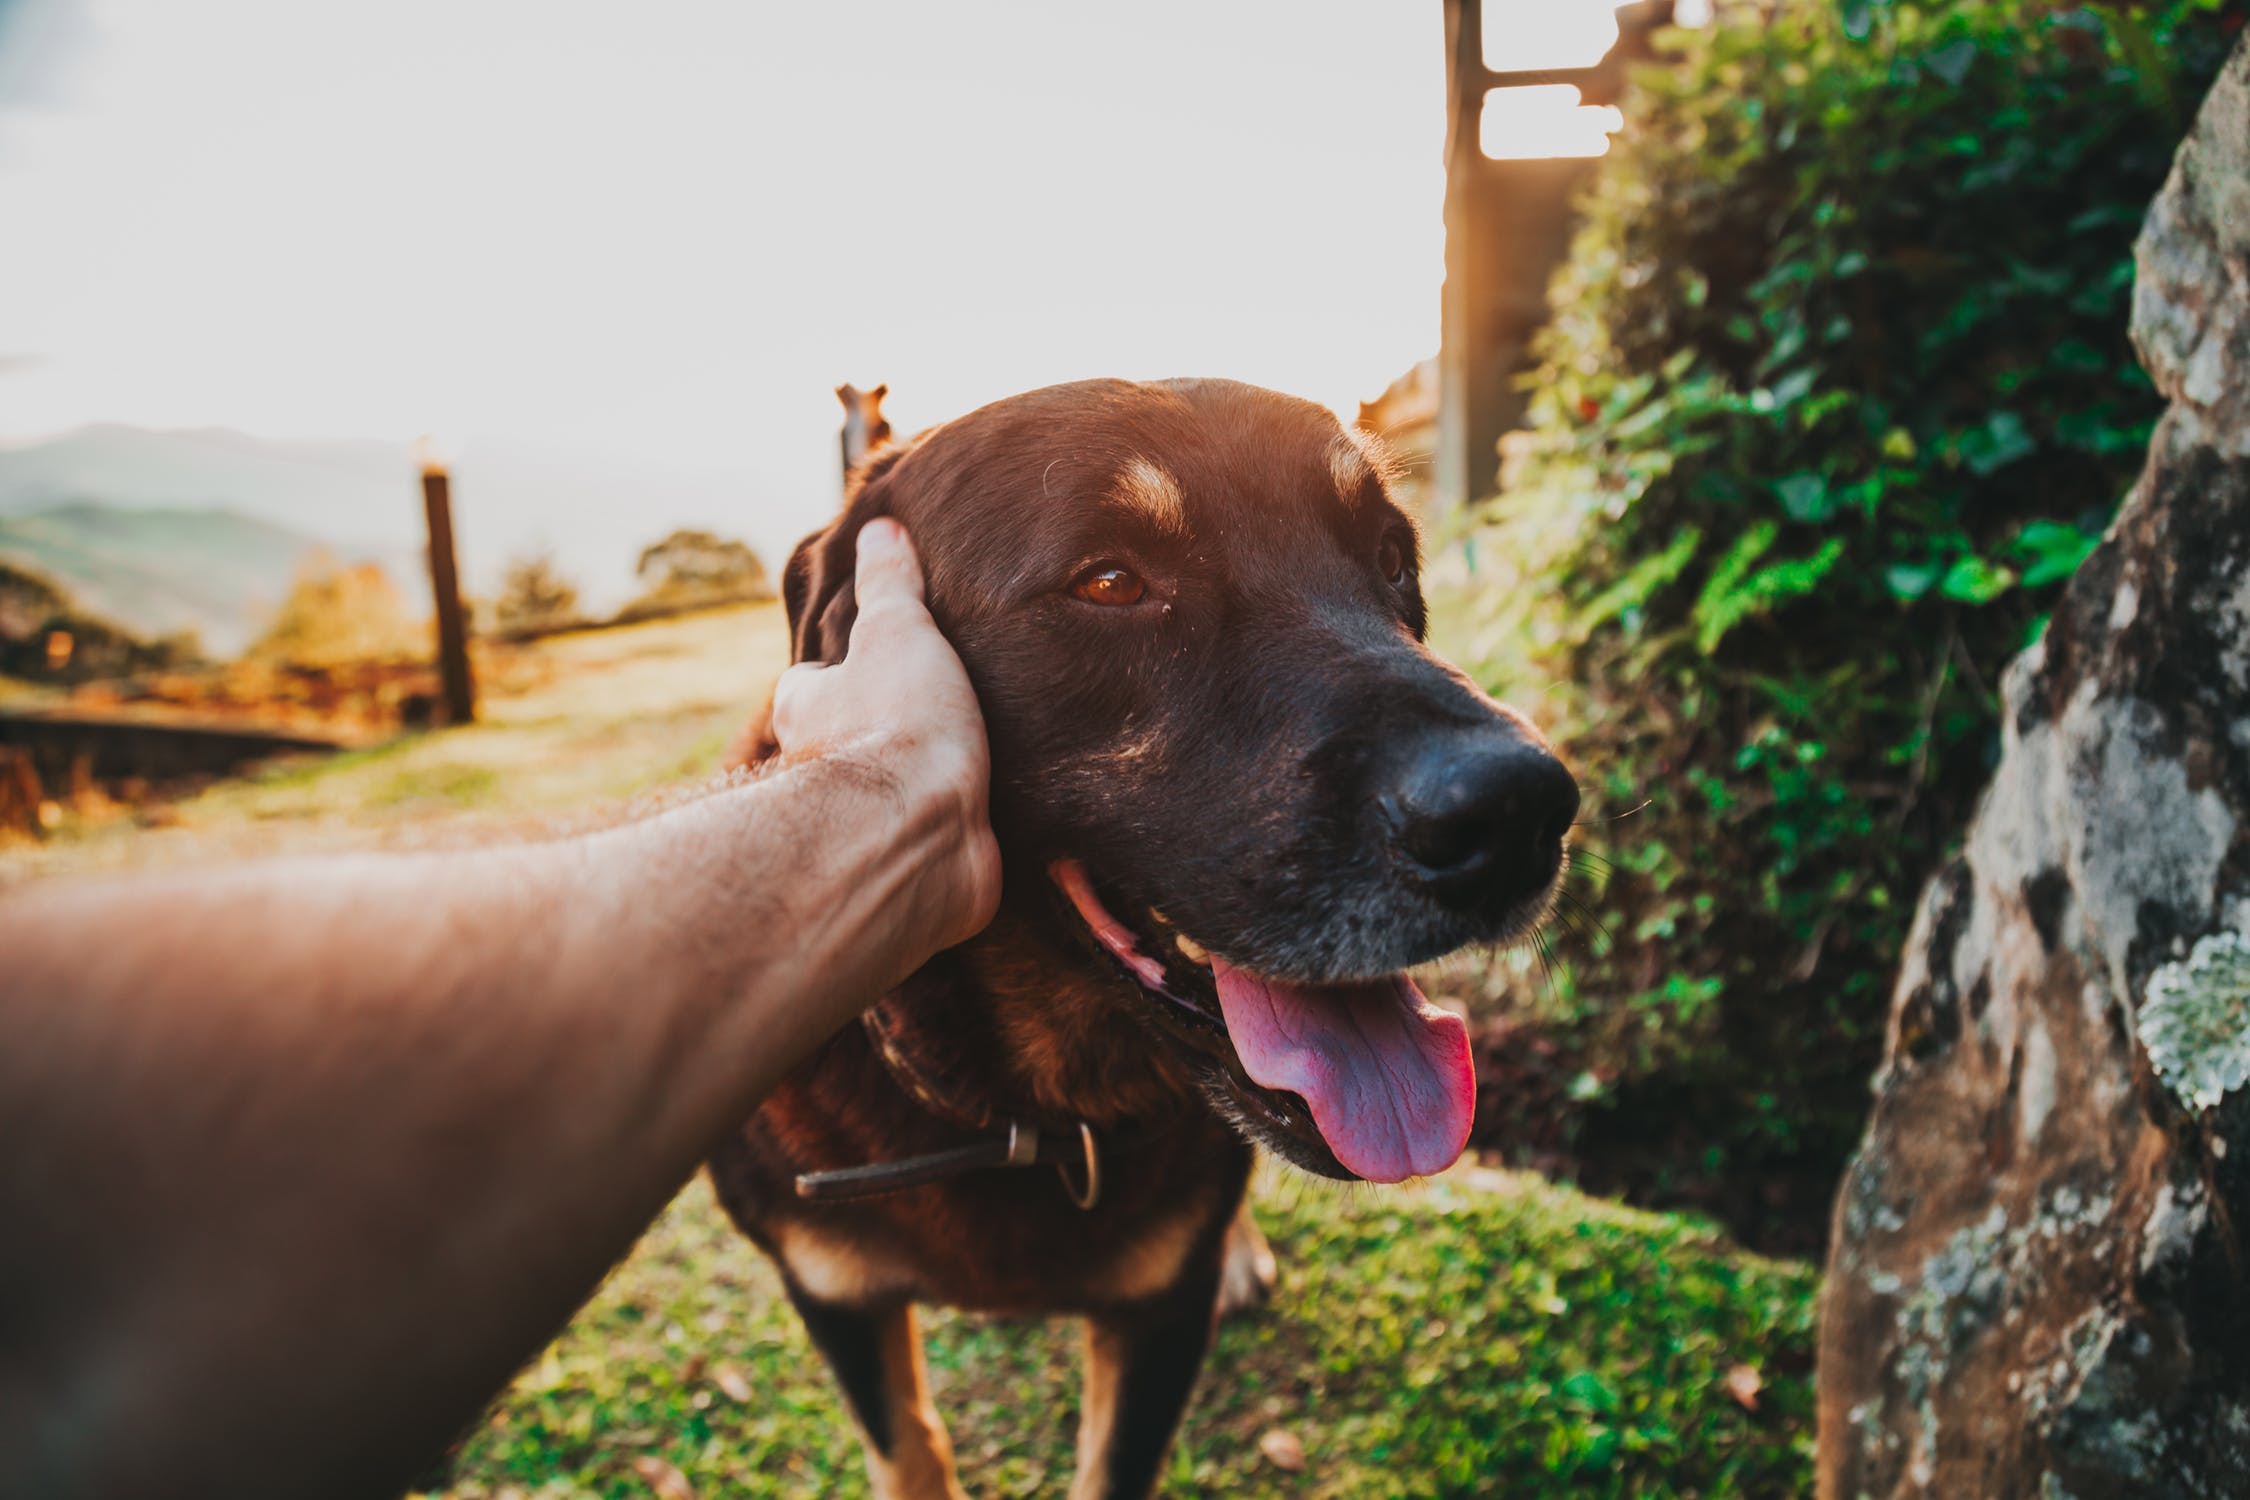 7 Clever Ways to Alleviate Dog Anxiety That You've Never Thought of Before